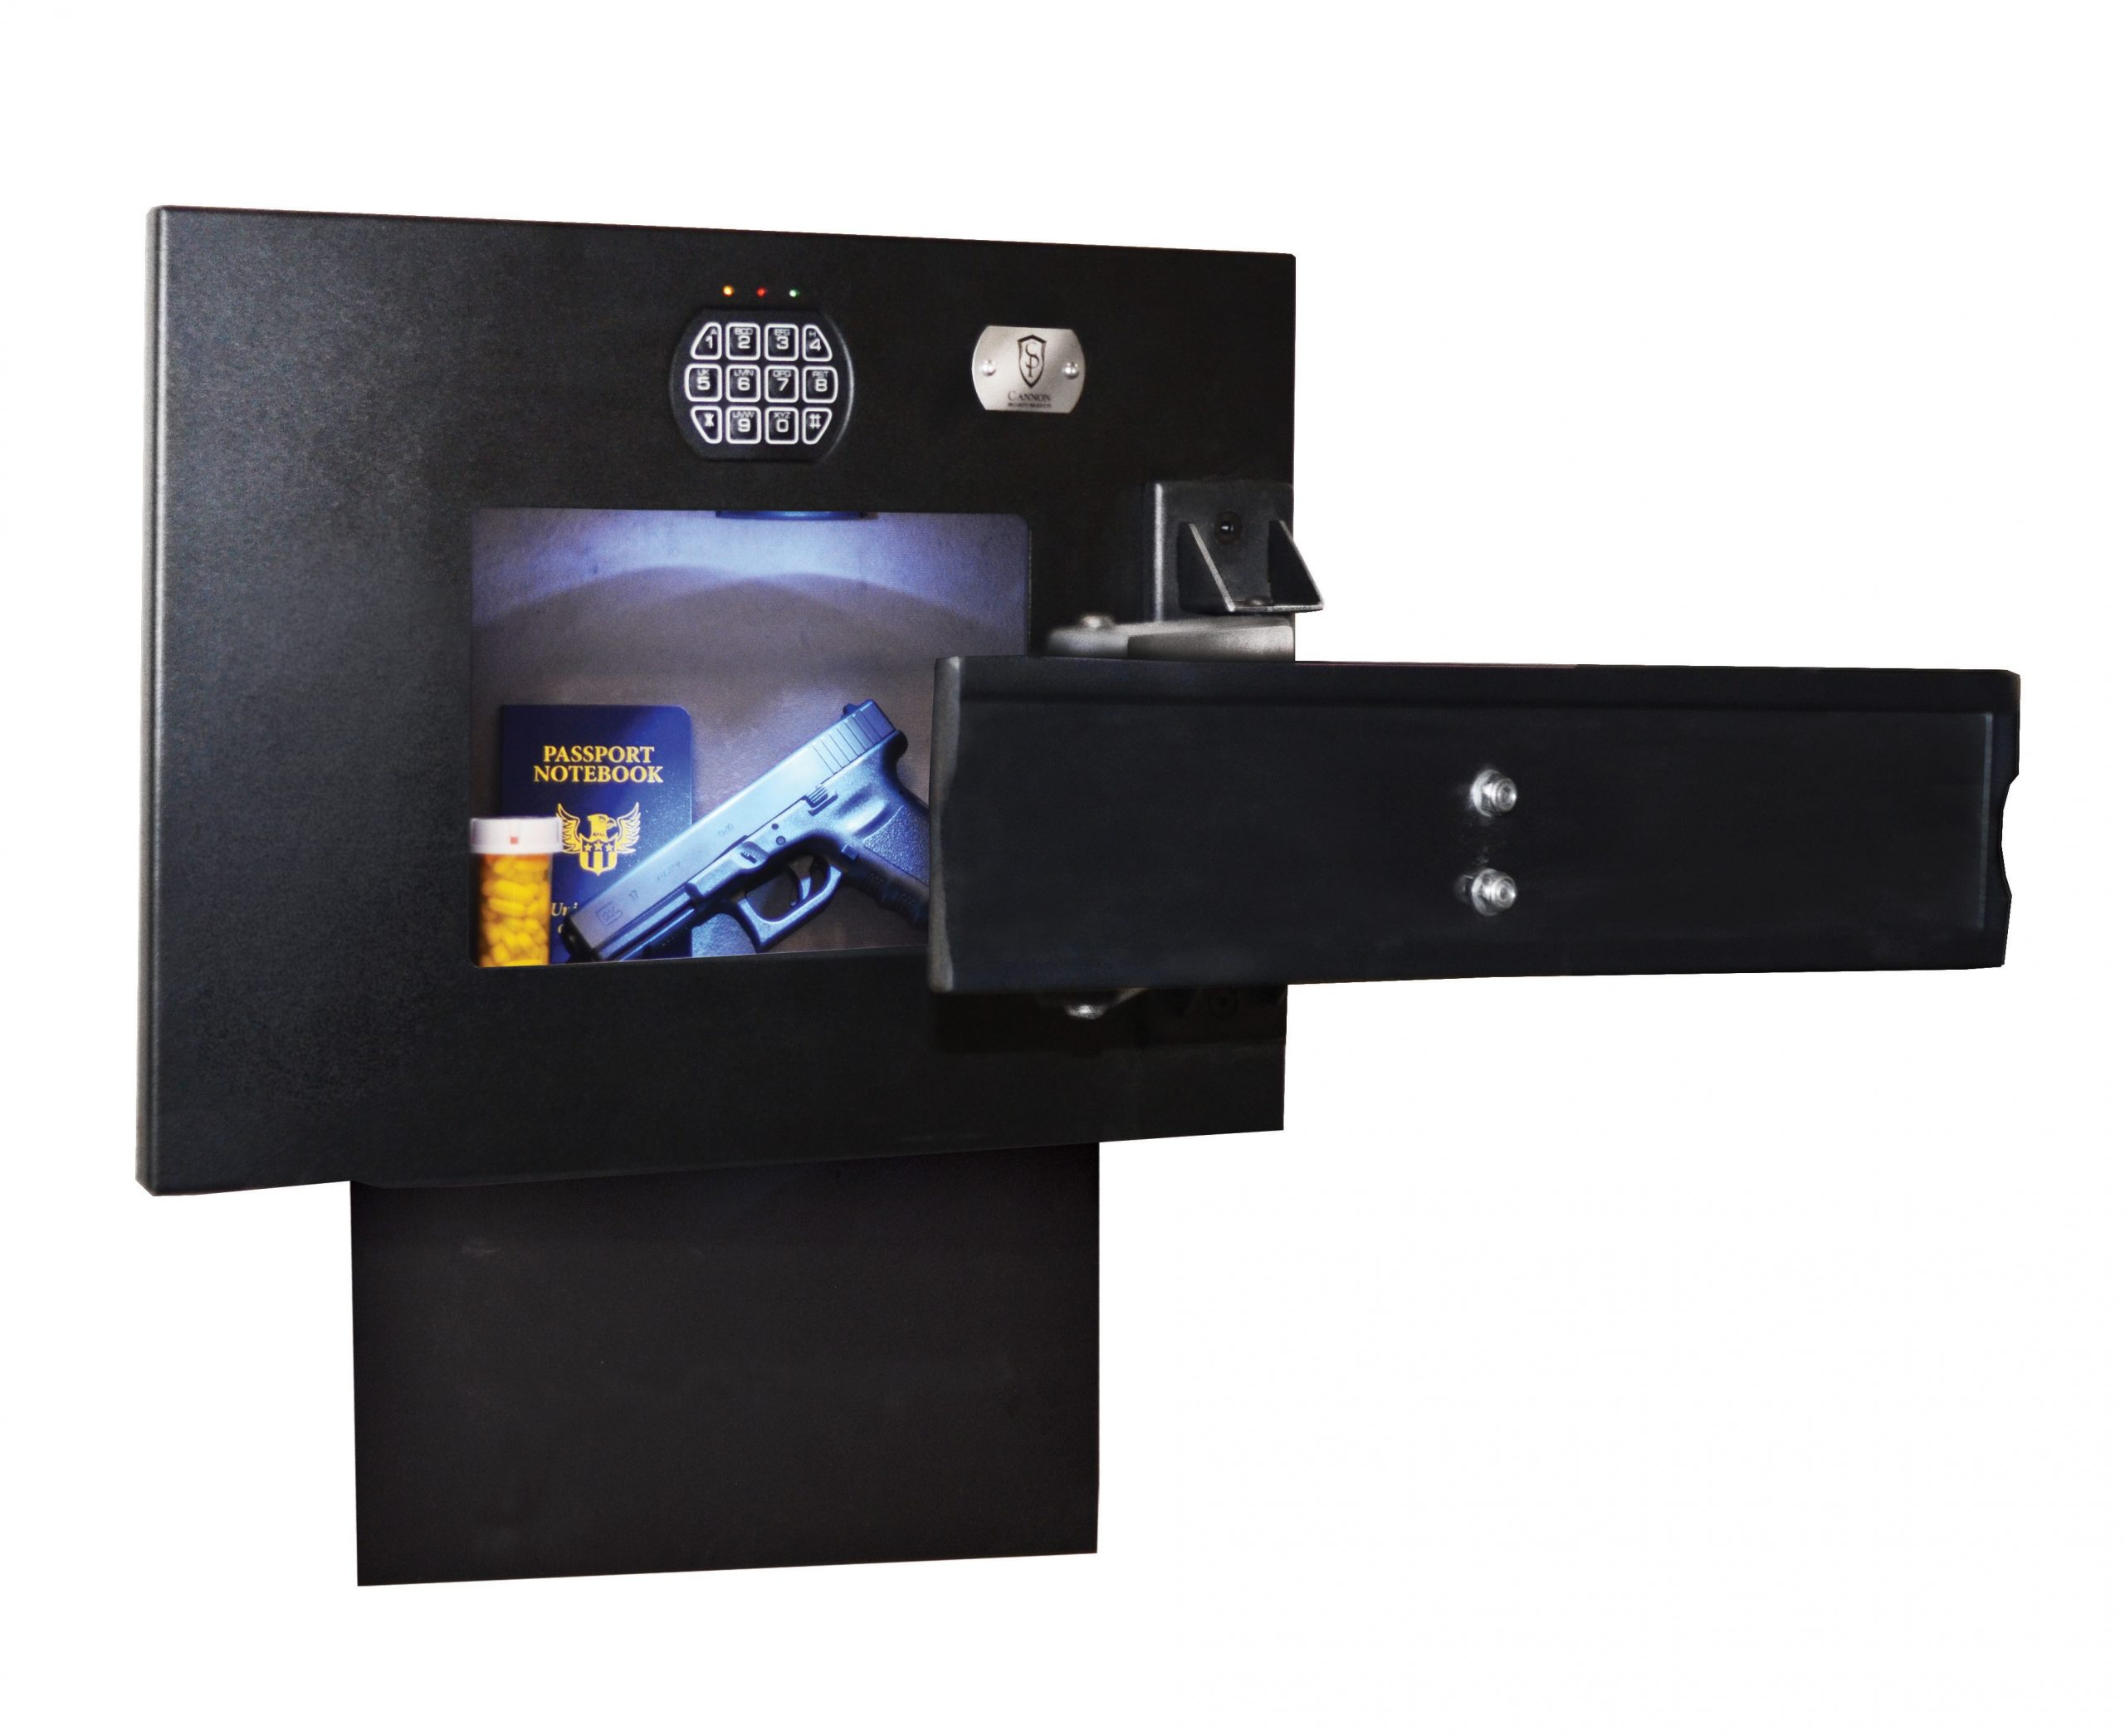 Wall Mount TV Hidden Compartment Safe